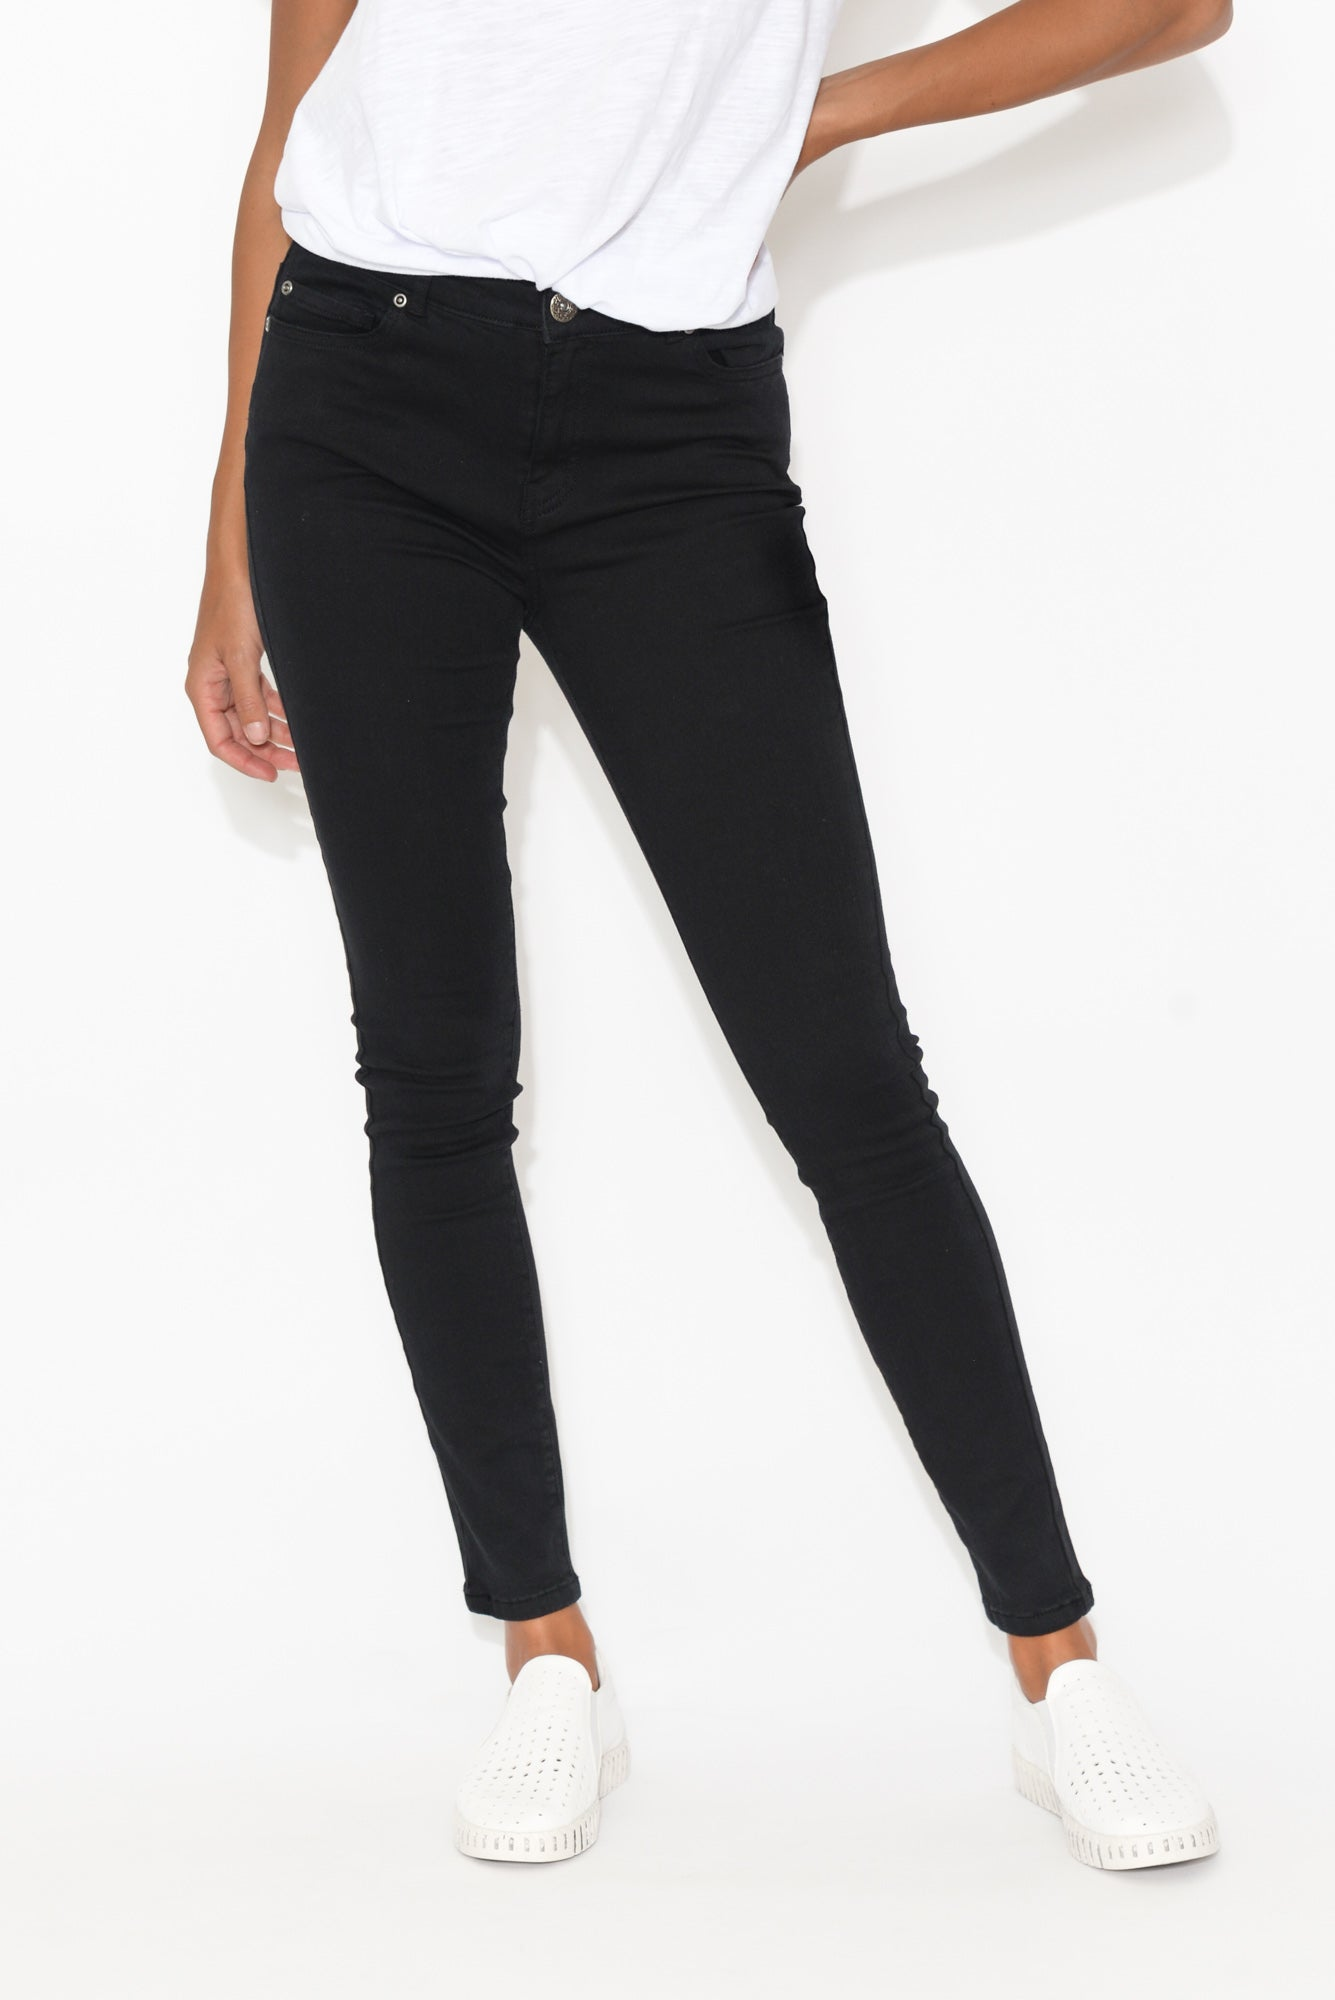 Brie Black Zip Stretch Jean